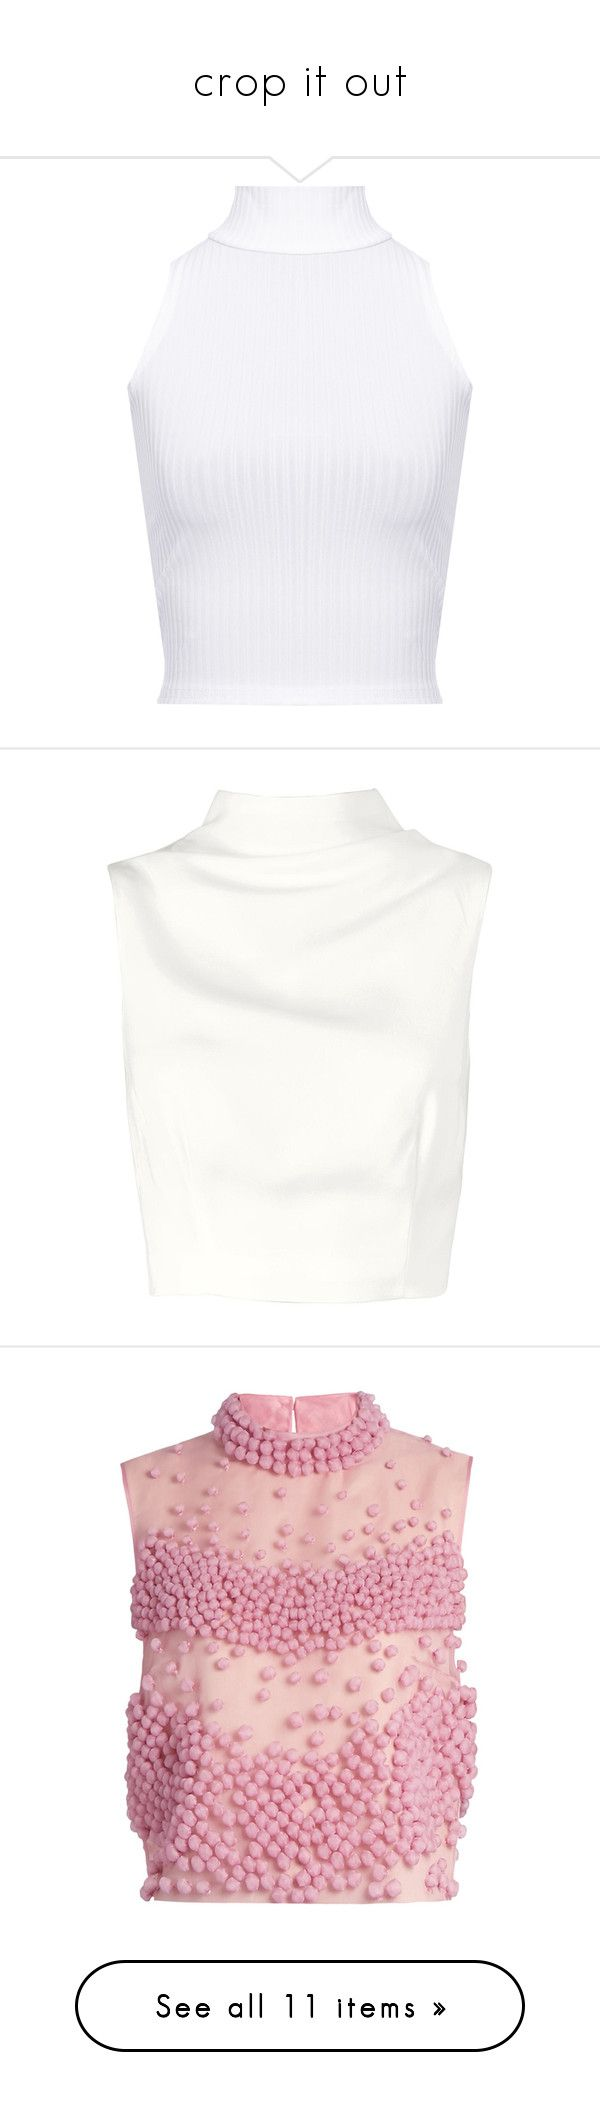 """""""crop it out"""" by sandylovee ❤ liked on Polyvore featuring tops, shirts, crop tops, blusas, white, white crop top, white sleeveless turtleneck, turtle neck crop top, white sleeveless shirt and white turtleneck"""